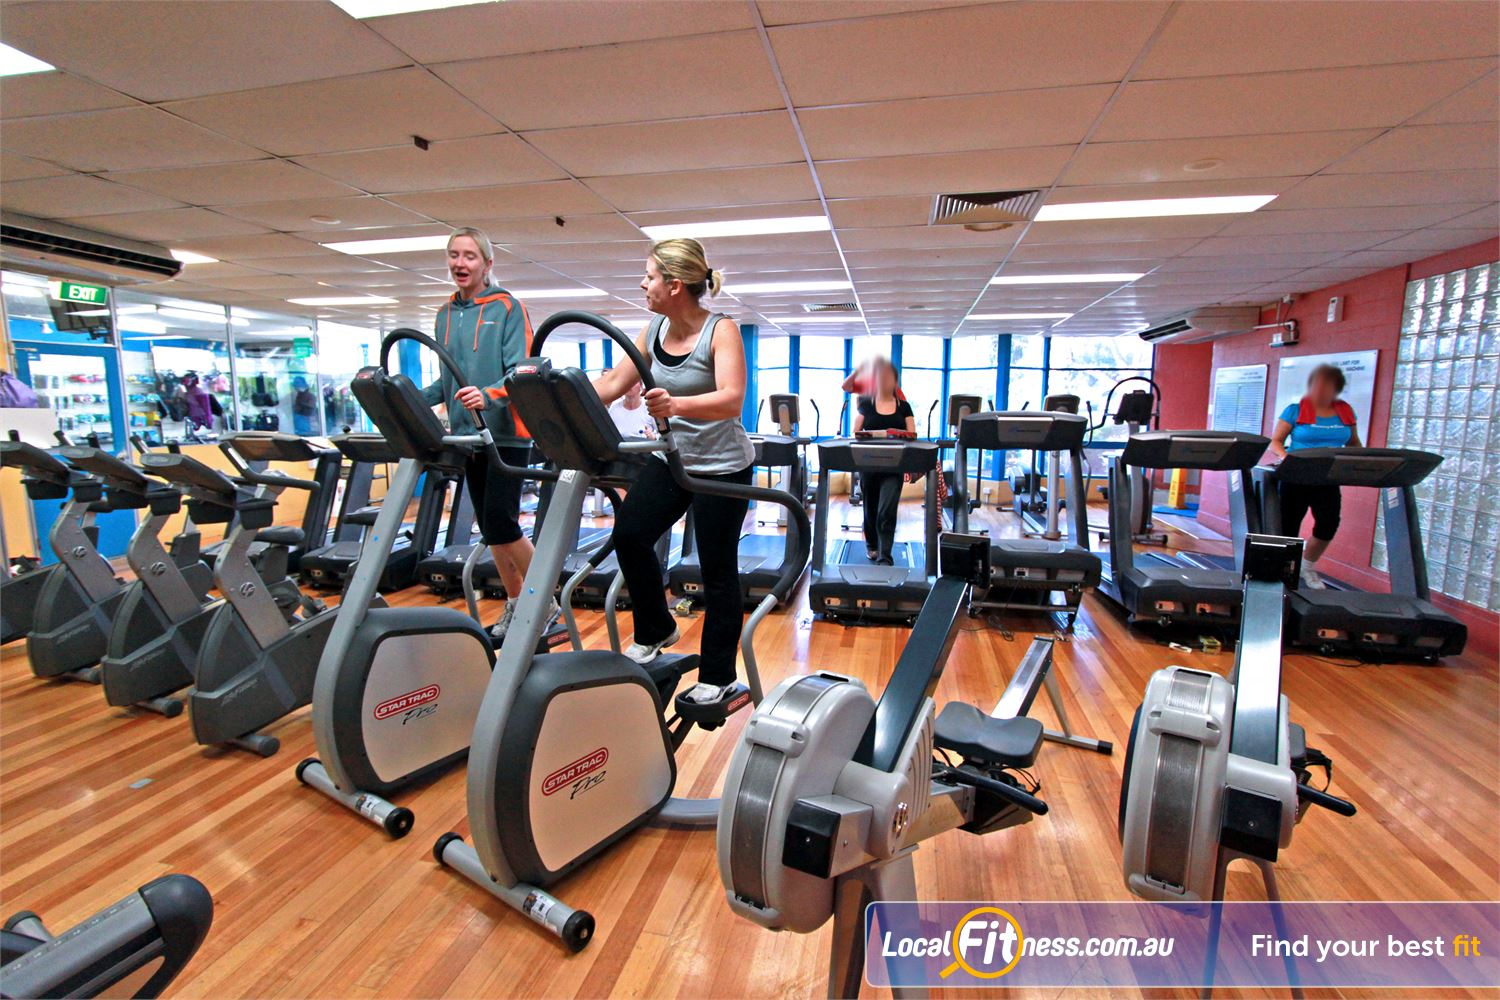 East Keilor Leisure Centre Keilor East Enjoy variety with cycle bikes, rowers, steppers and more.